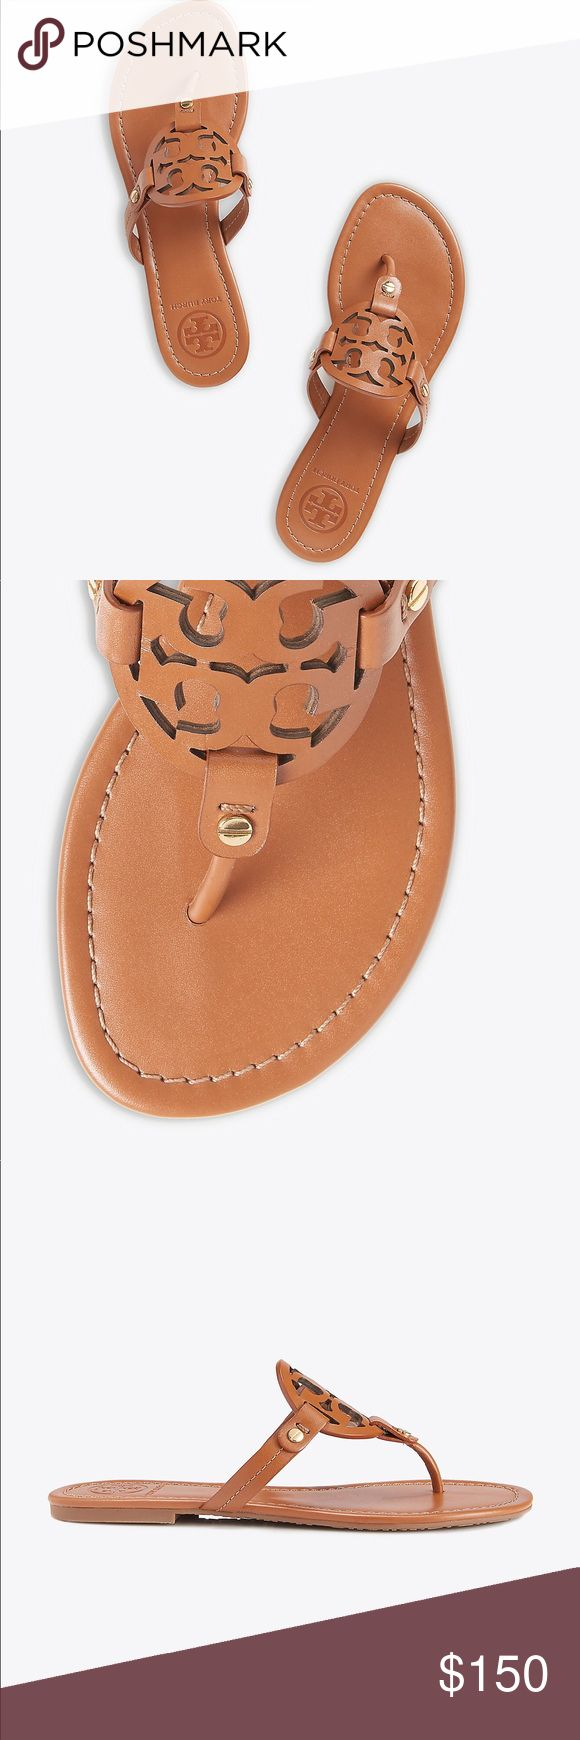 Tory Burch sandals/ Flip Flop BRAND NEW! Size:6 1/2 Color: Camel Tory Burch Shoes Sandals